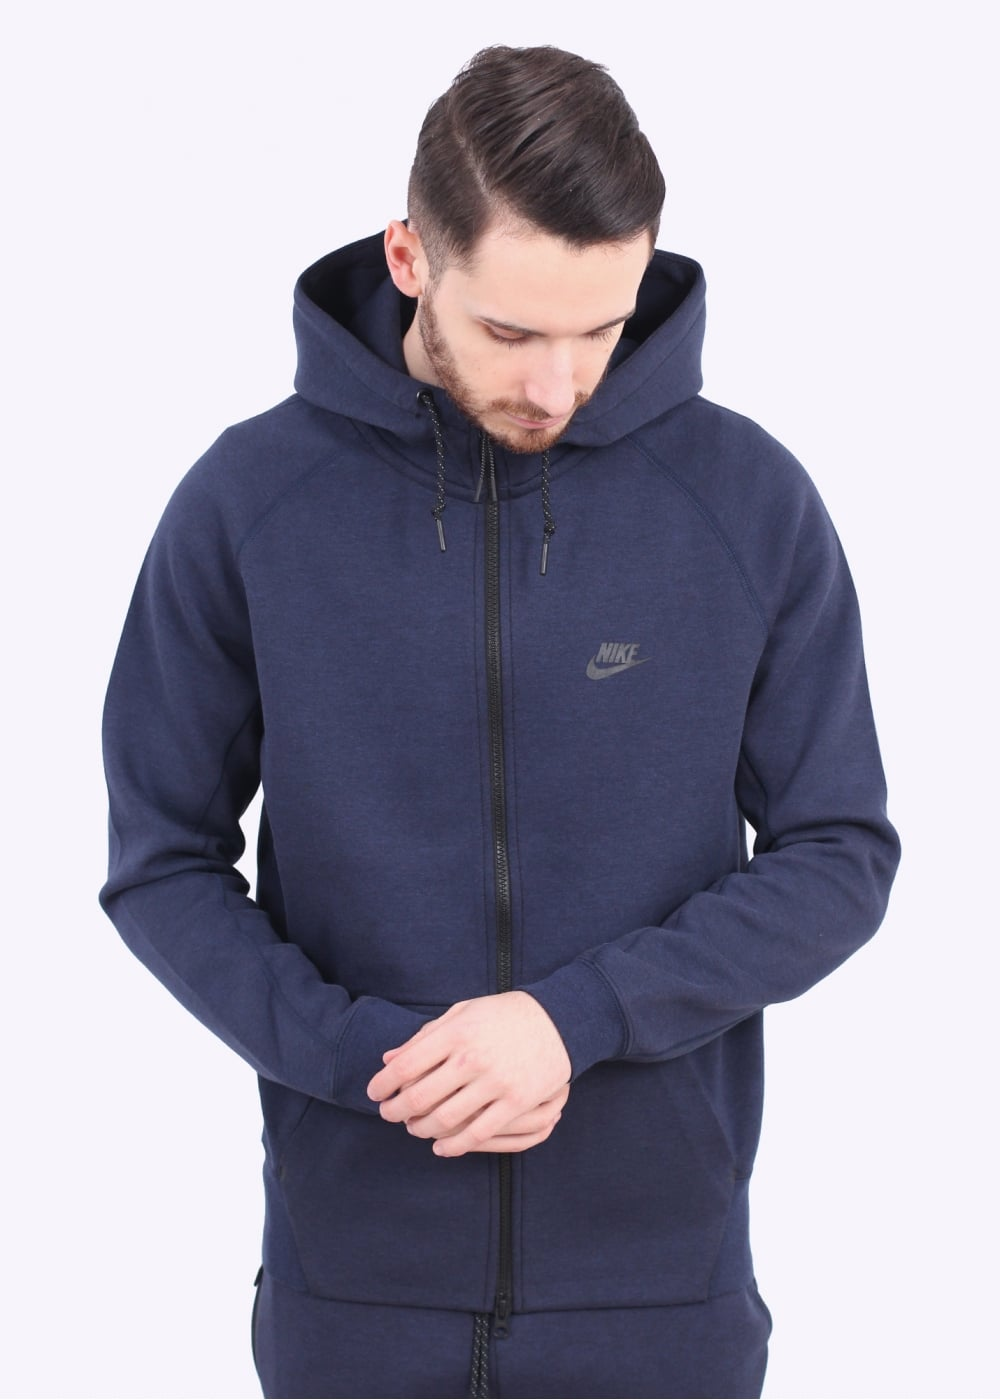 nike tech fleece aw77 hoodie obsidian. Black Bedroom Furniture Sets. Home Design Ideas